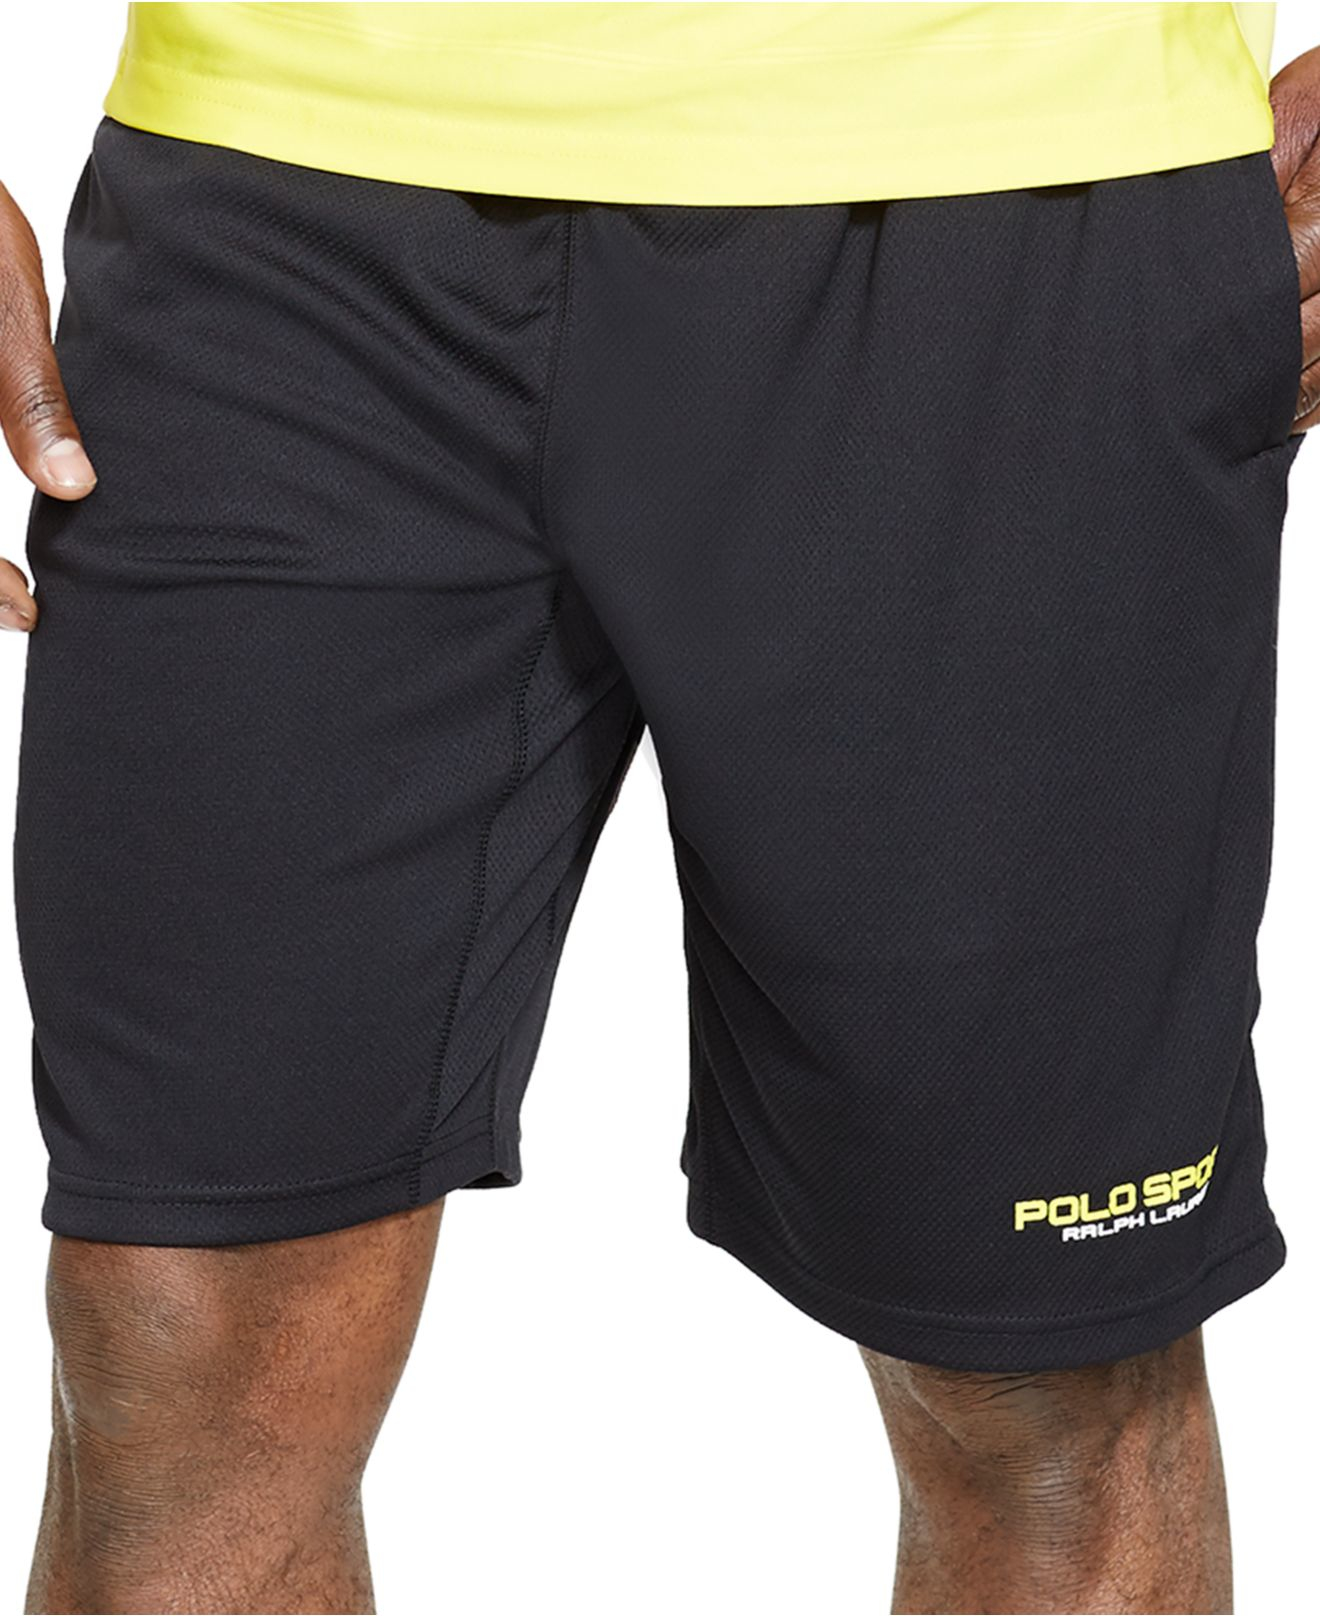 polo ralph lauren polo sport jersey athletic shorts in. Black Bedroom Furniture Sets. Home Design Ideas